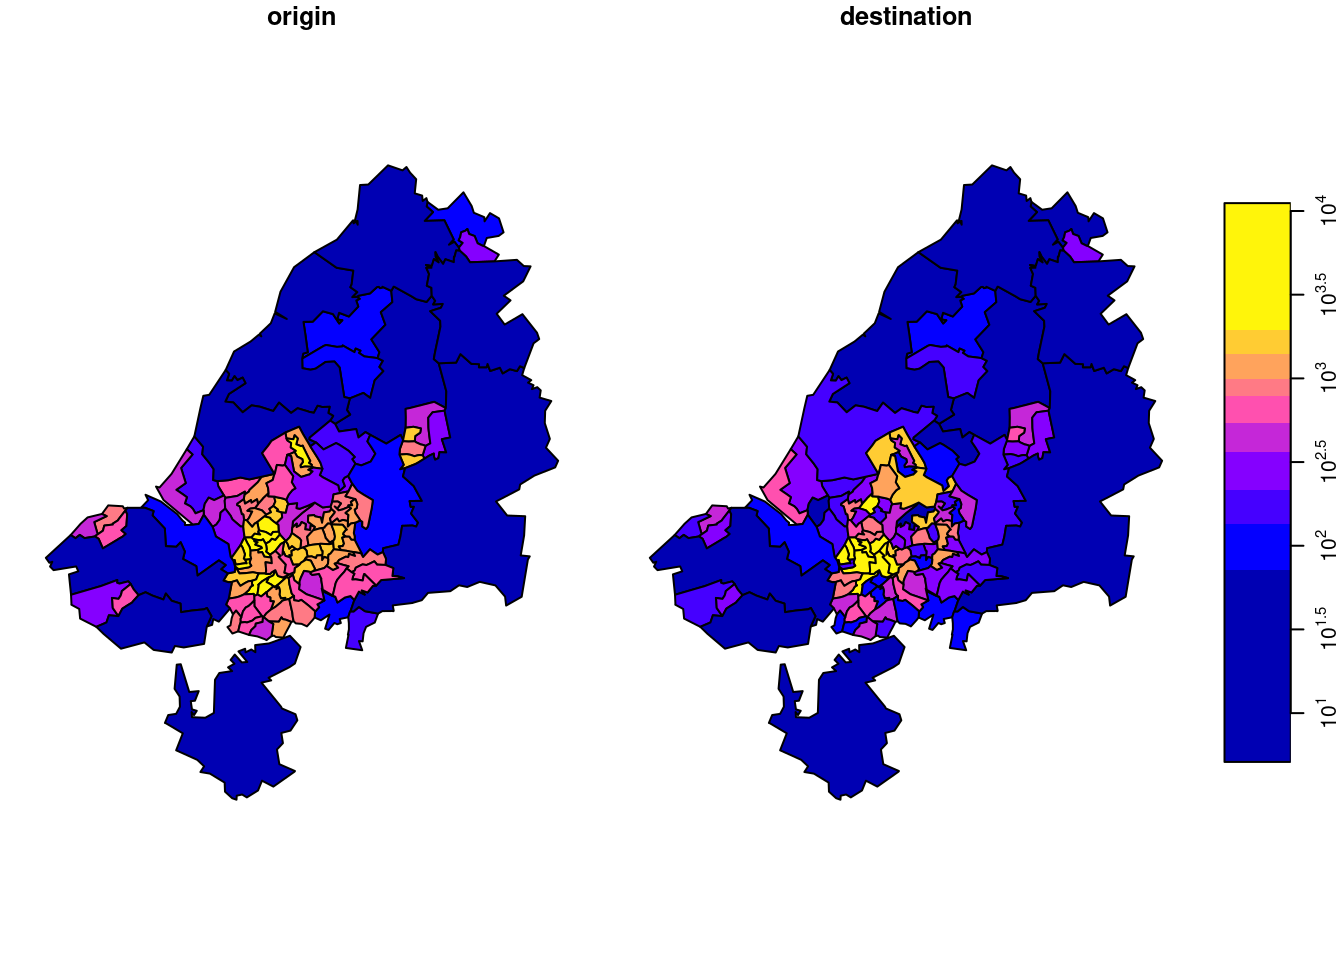 total commutes per square km, by area of origin (left) or destination (right)